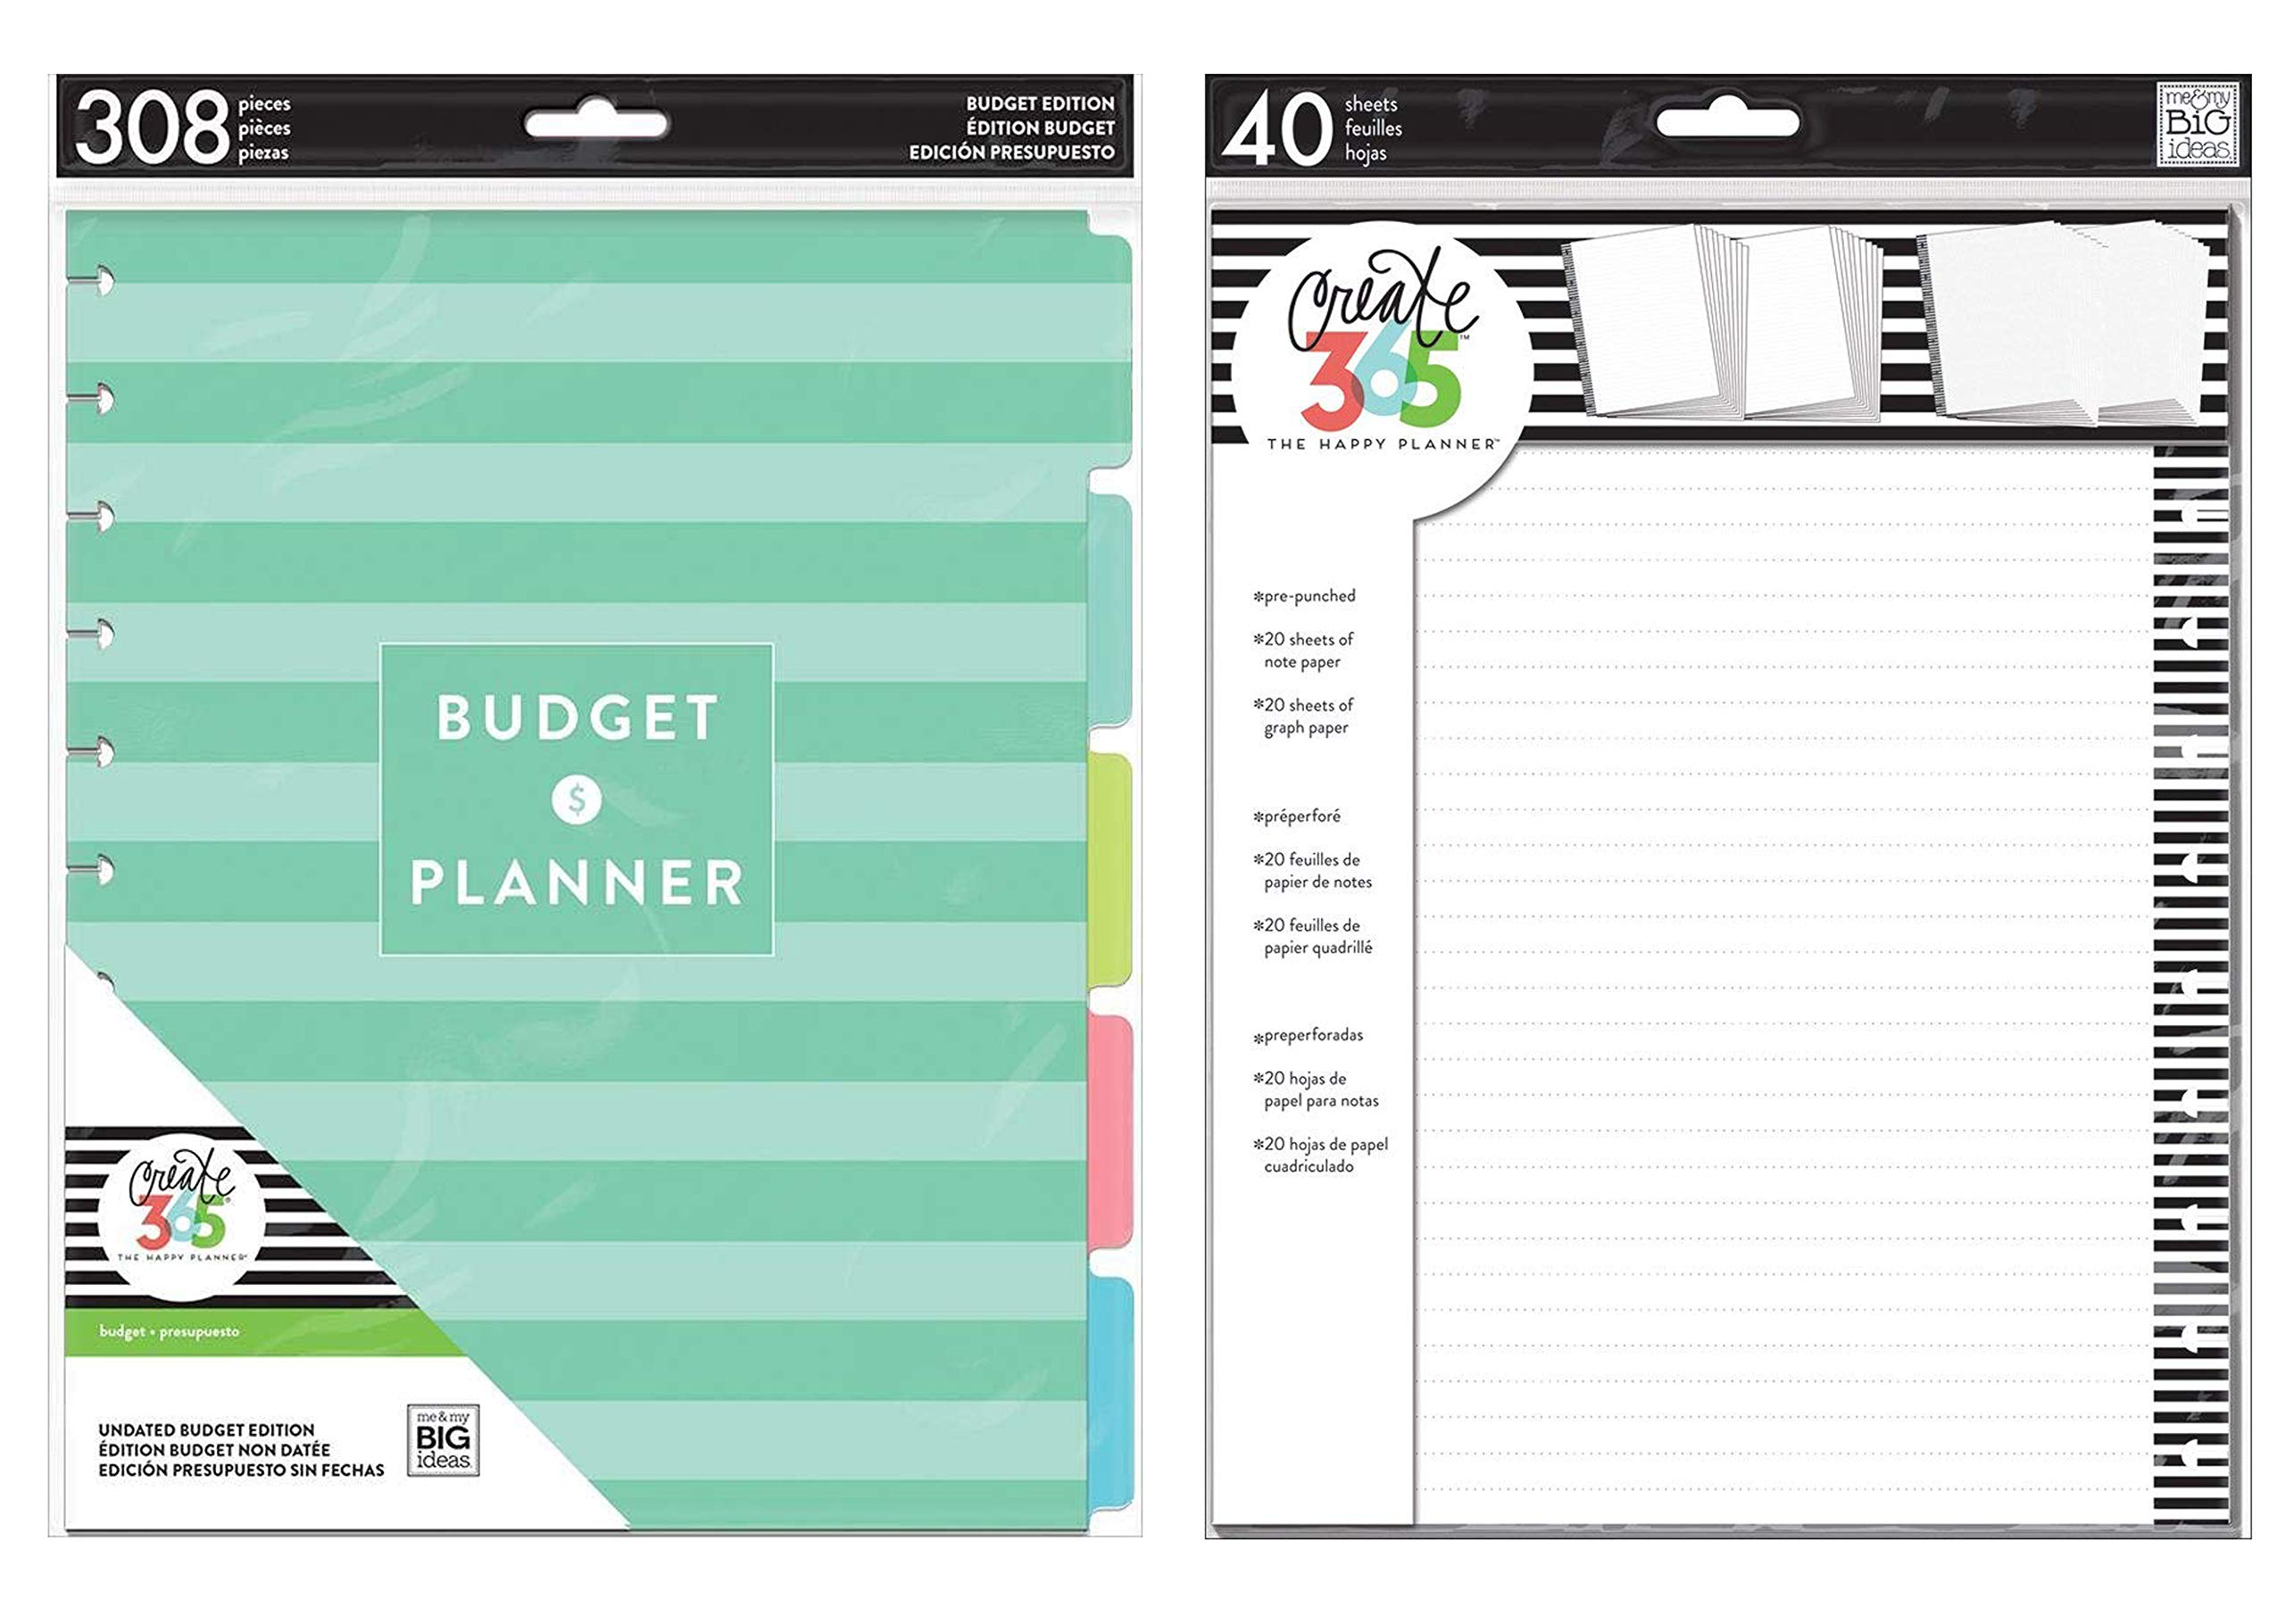 Me & My Big Ideas Create 365 Big Budget Extension and Big Fill Paper MONB-04 & FILB-01 (Fits Big Sized Planners) by MAMBI Bundles